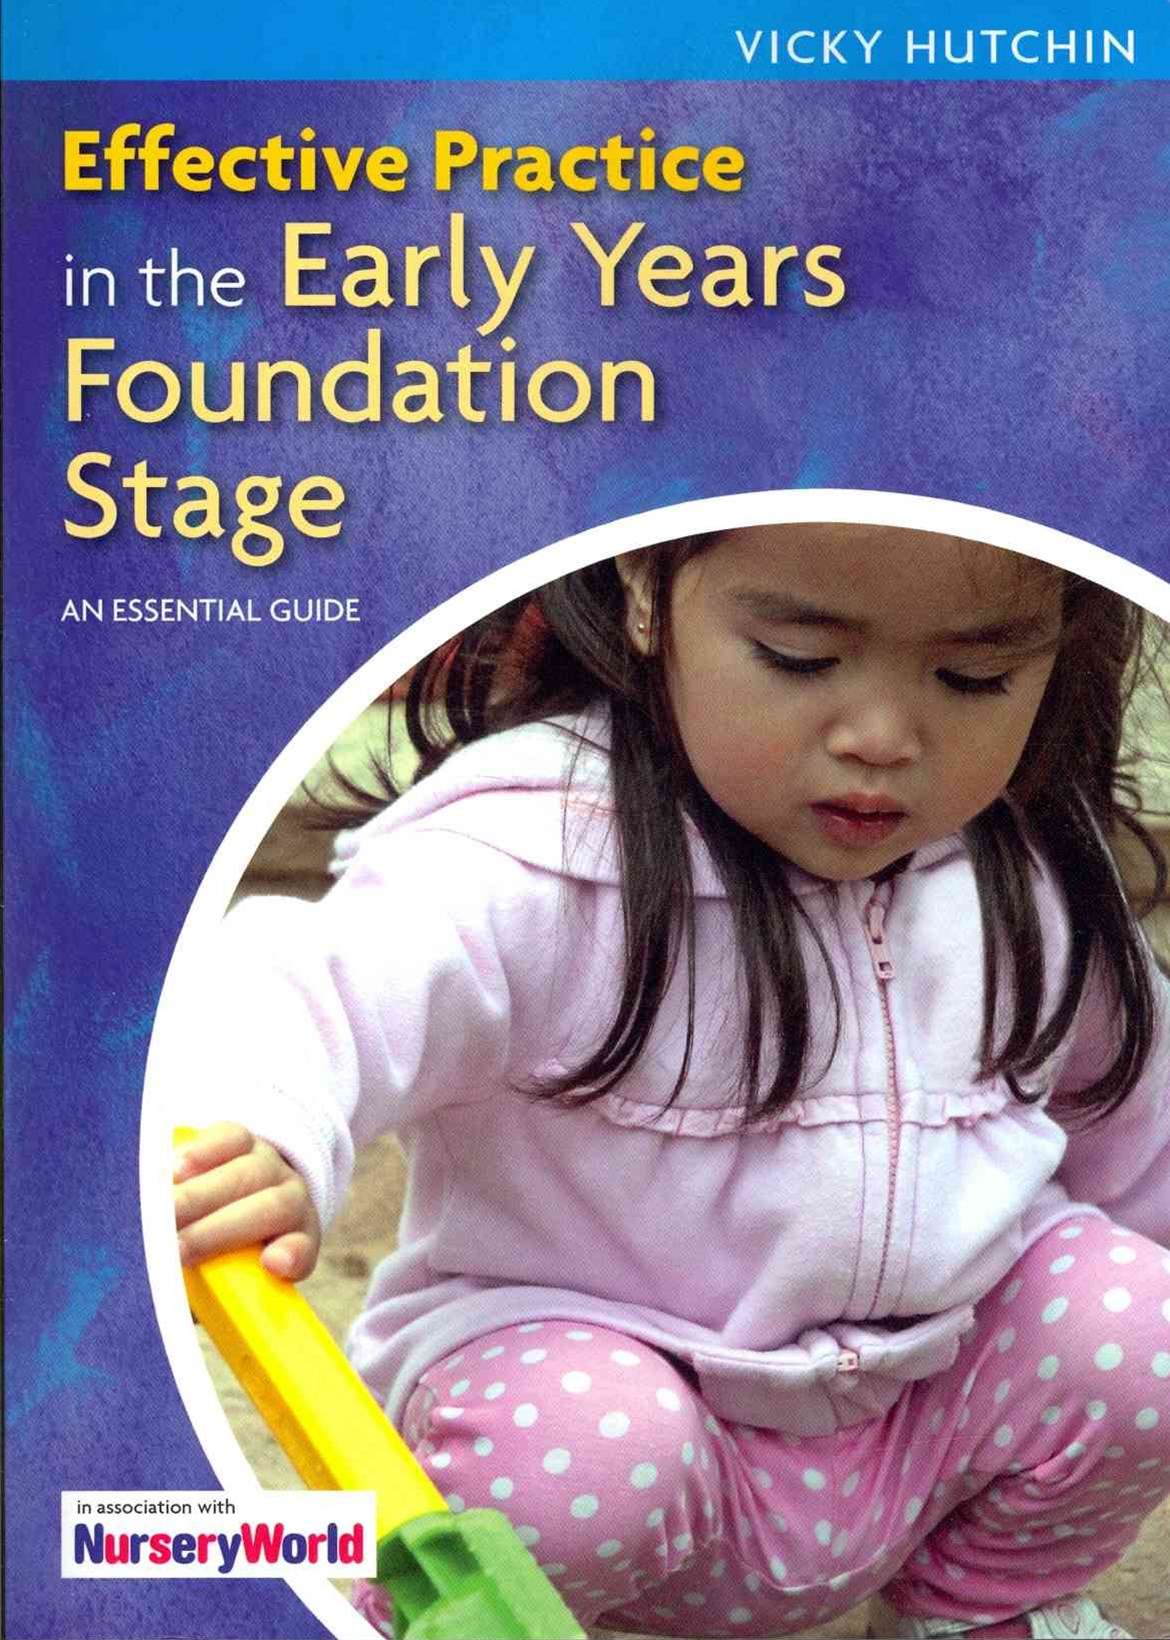 Effective Practice in the Early Years Foundation Stage